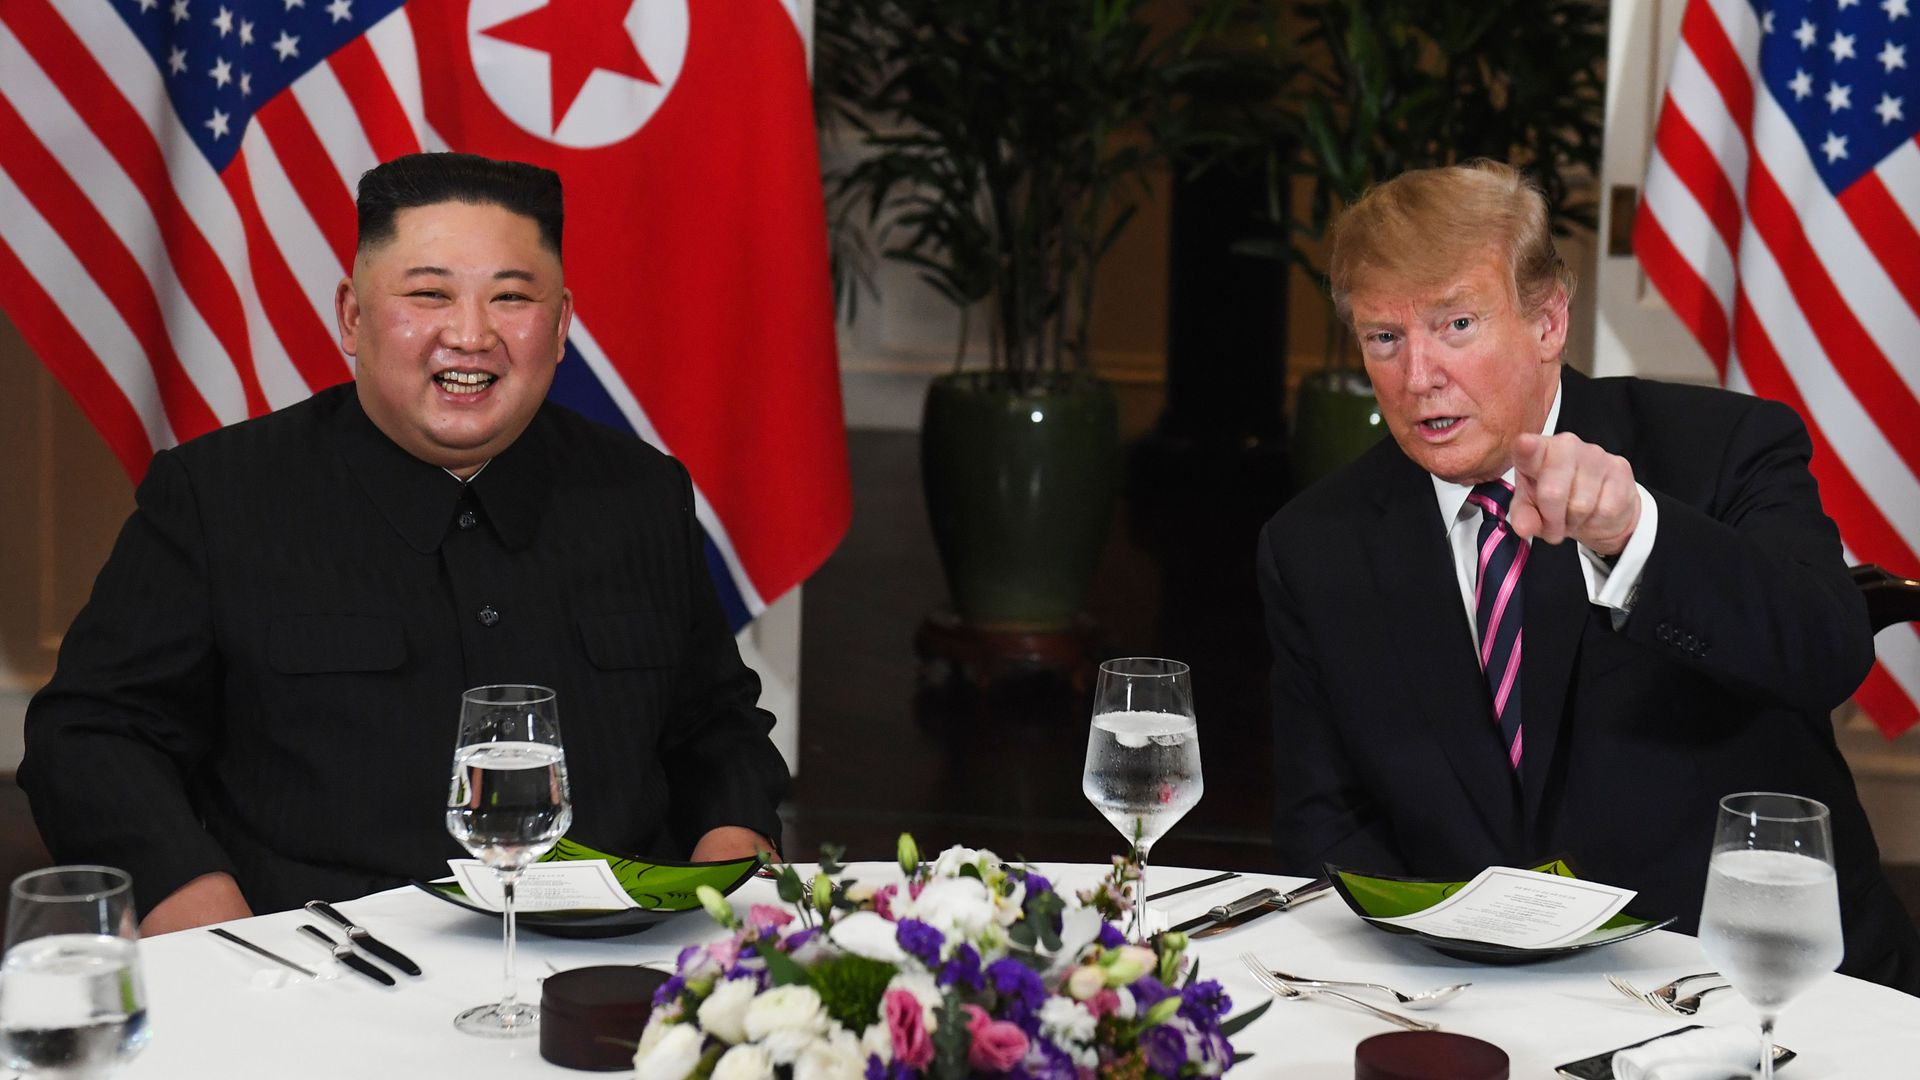 North Korea leader Kim Jong-un and President Trump sit down for a second summit.